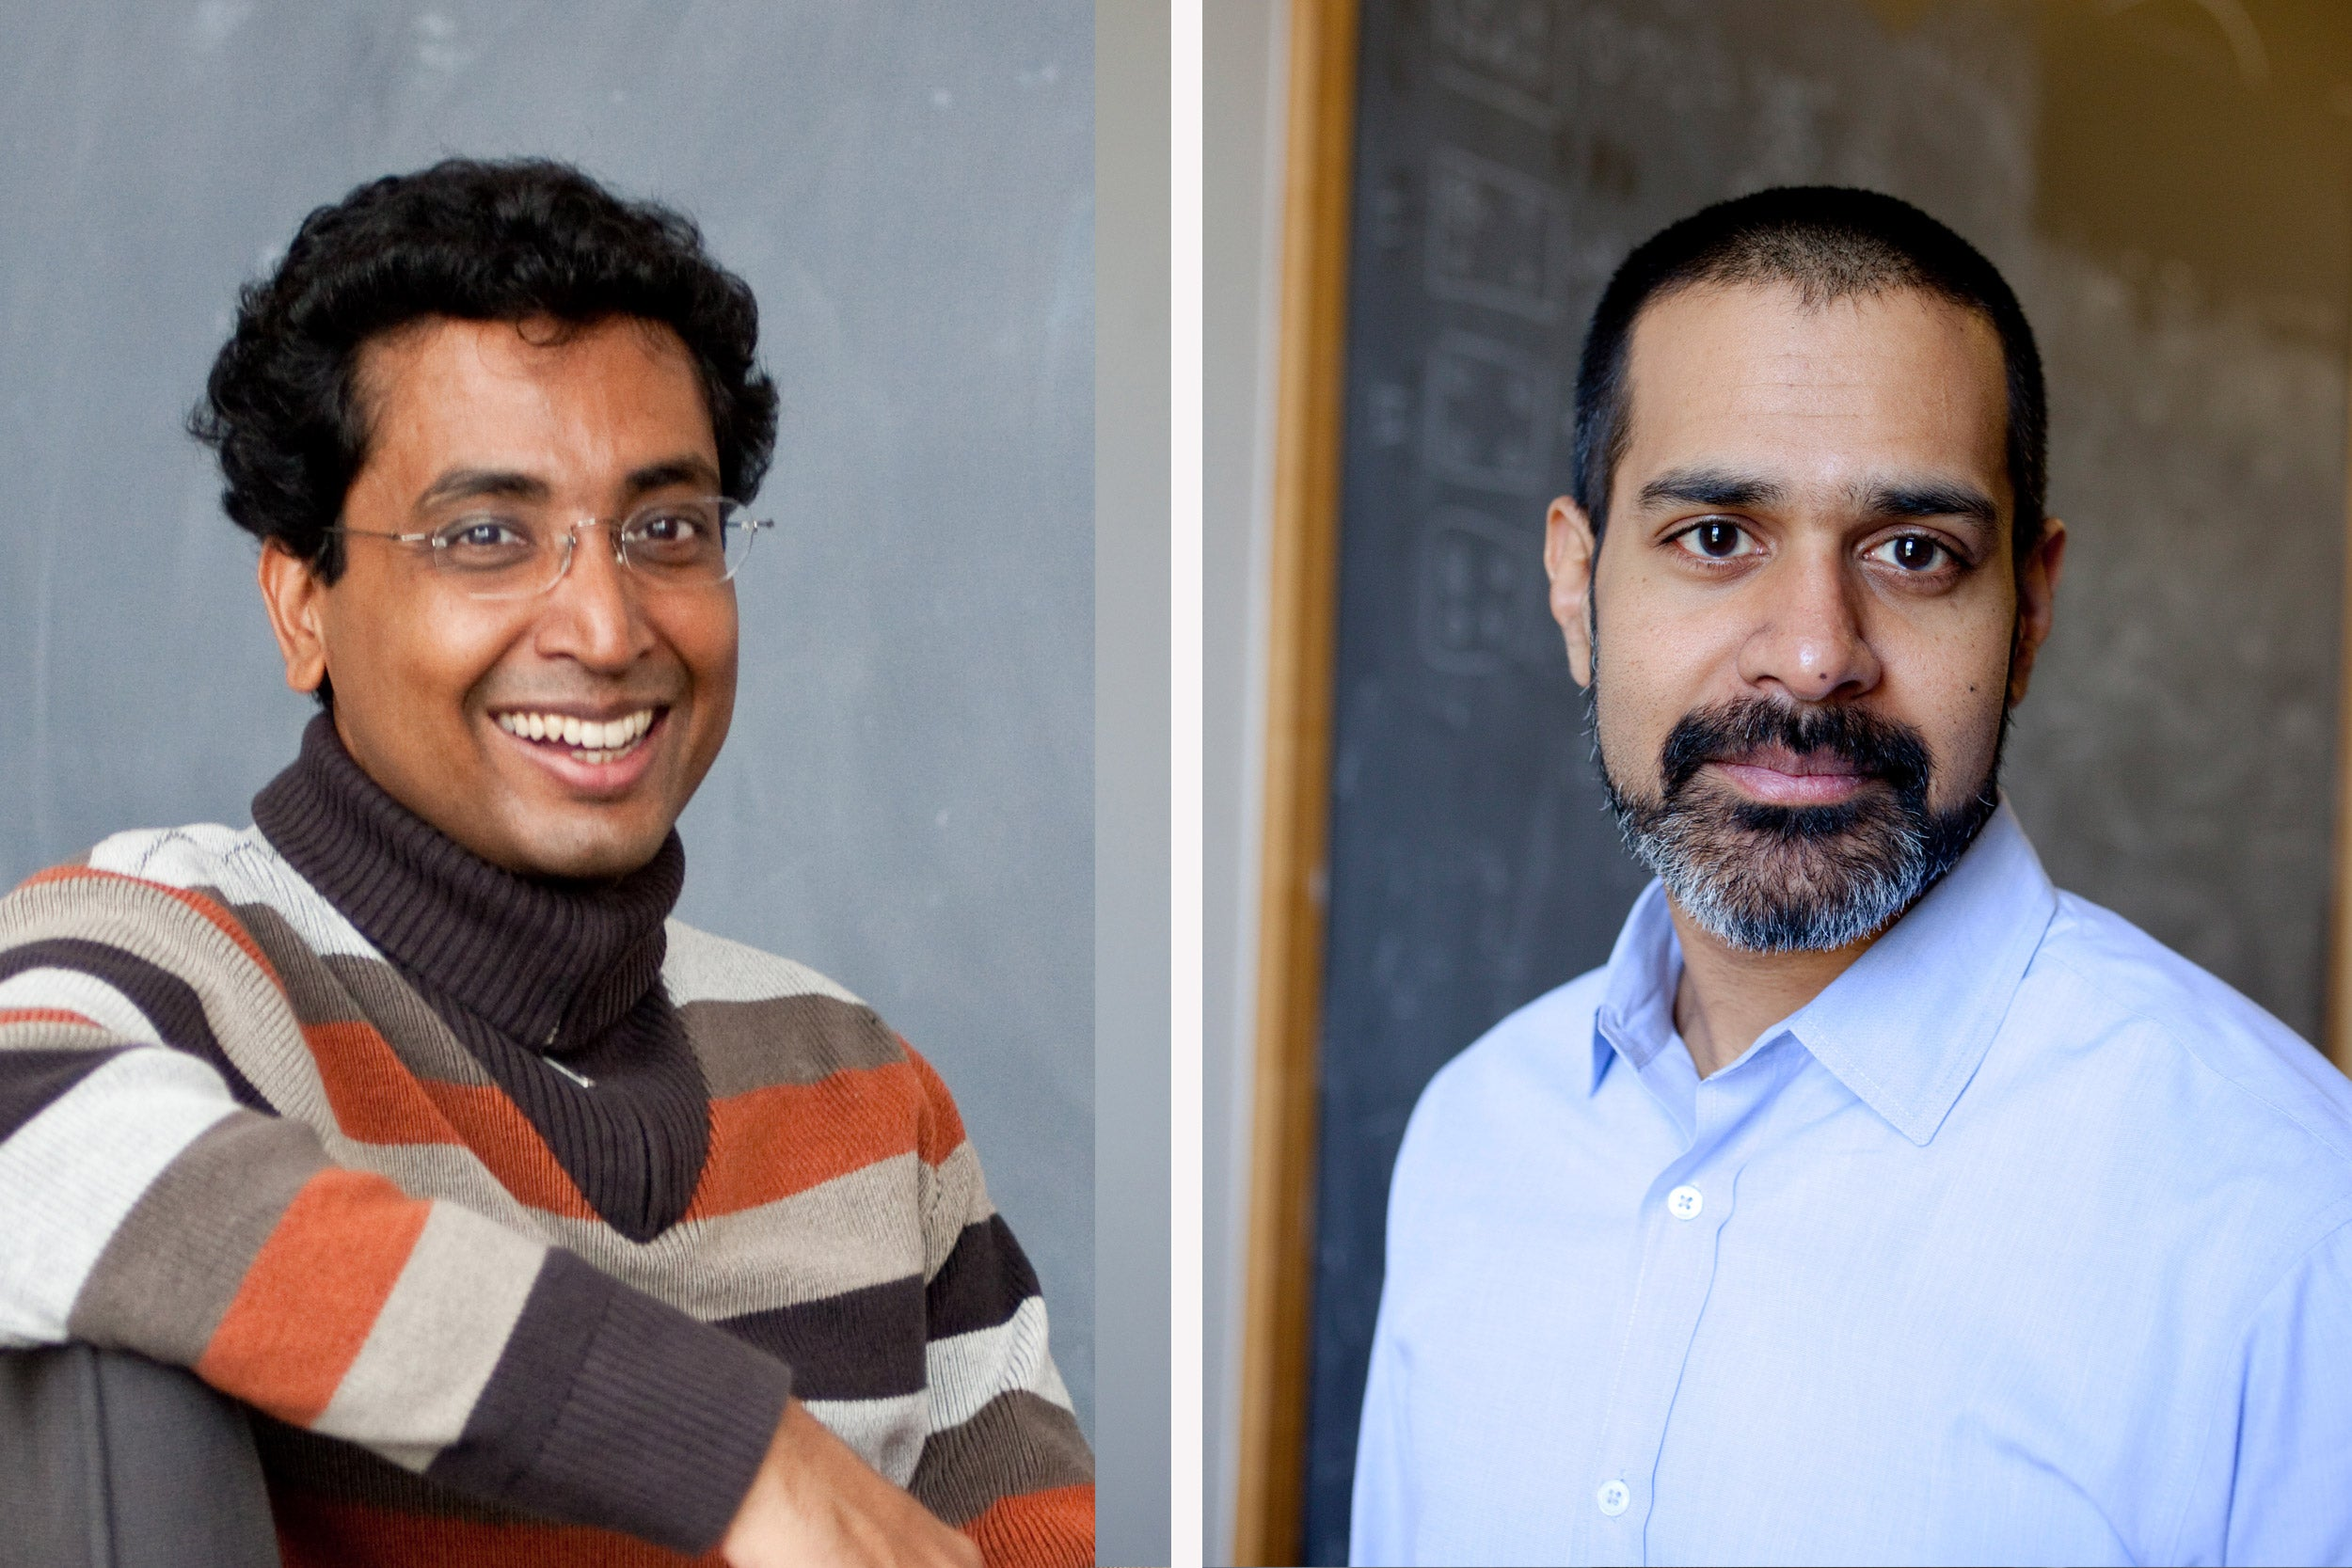 To increase scientific understanding of biological systems, Harvard is launching an interdisciplinary research effort called the Quantitative Biology Initiative to be headed by Sharad Ramanathan (left) and Vinothan Manoharan, with support from University President Drew Faust and Dean Michael D. Smith.